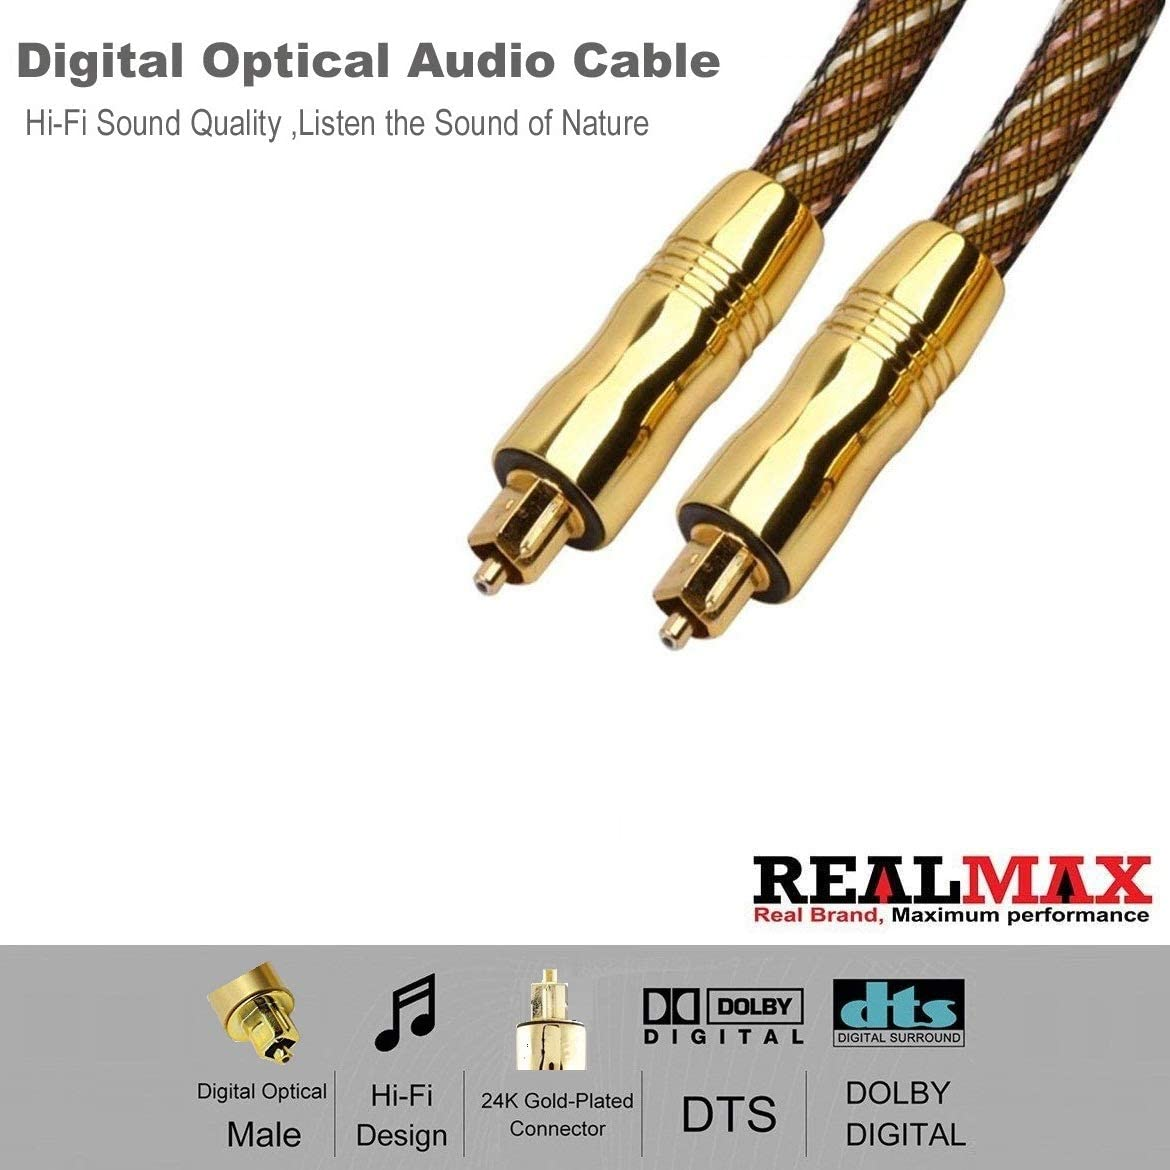 REALMAX Toslink Cable 1m 2m 3m 4m 5m 10m Digital Fiber Optical Male to Male Lead Audio Premium Quality Supports LG Samsung Sony Philips Sound Bar Smart TV HDTV Home Theater PS4 Xbox PlayStation【3m】